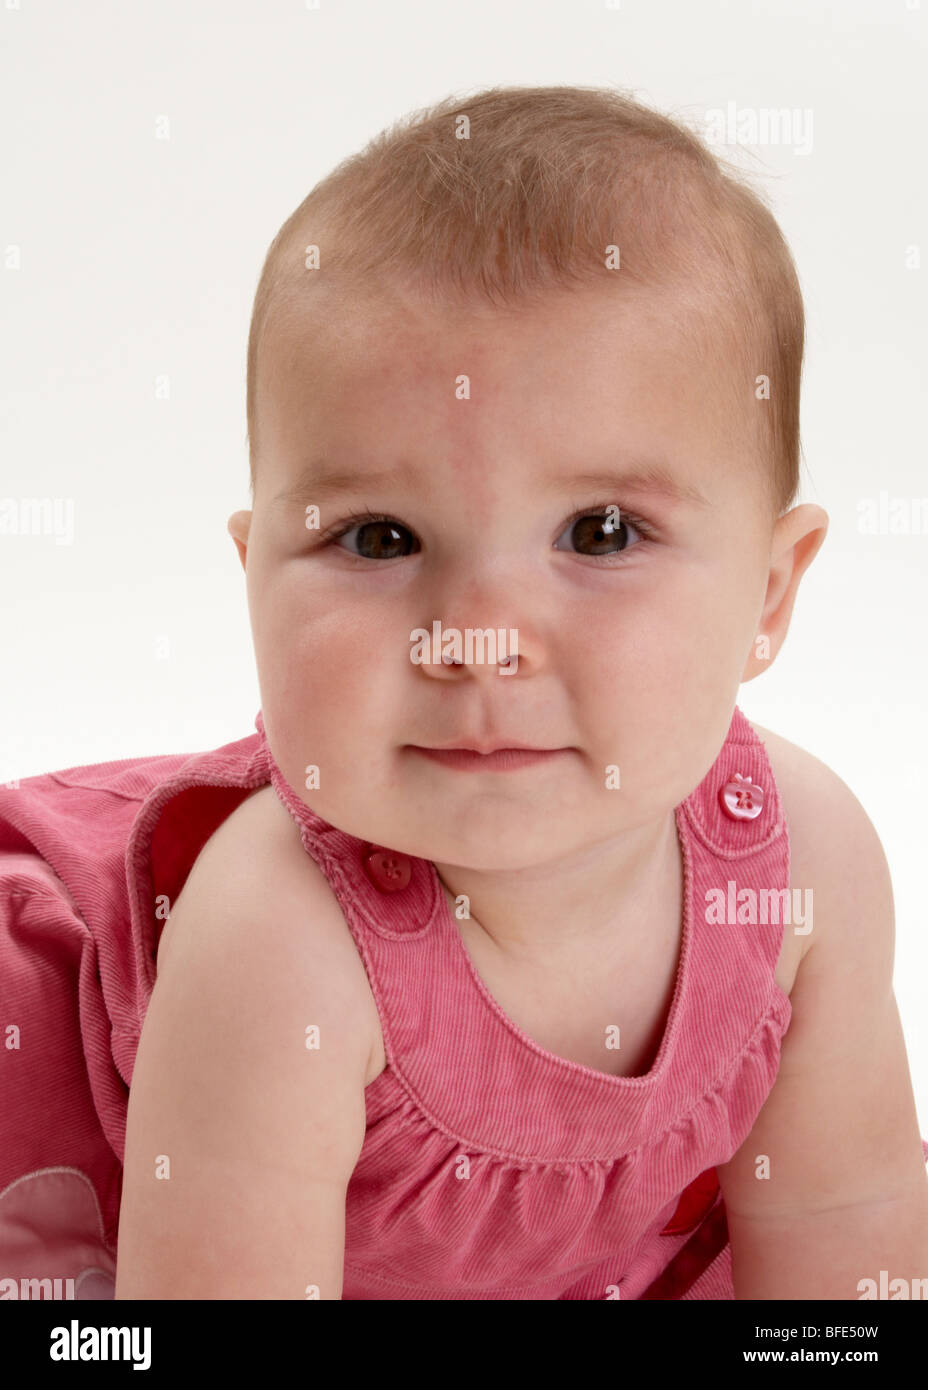 1 year old baby girl in pink dress on white background